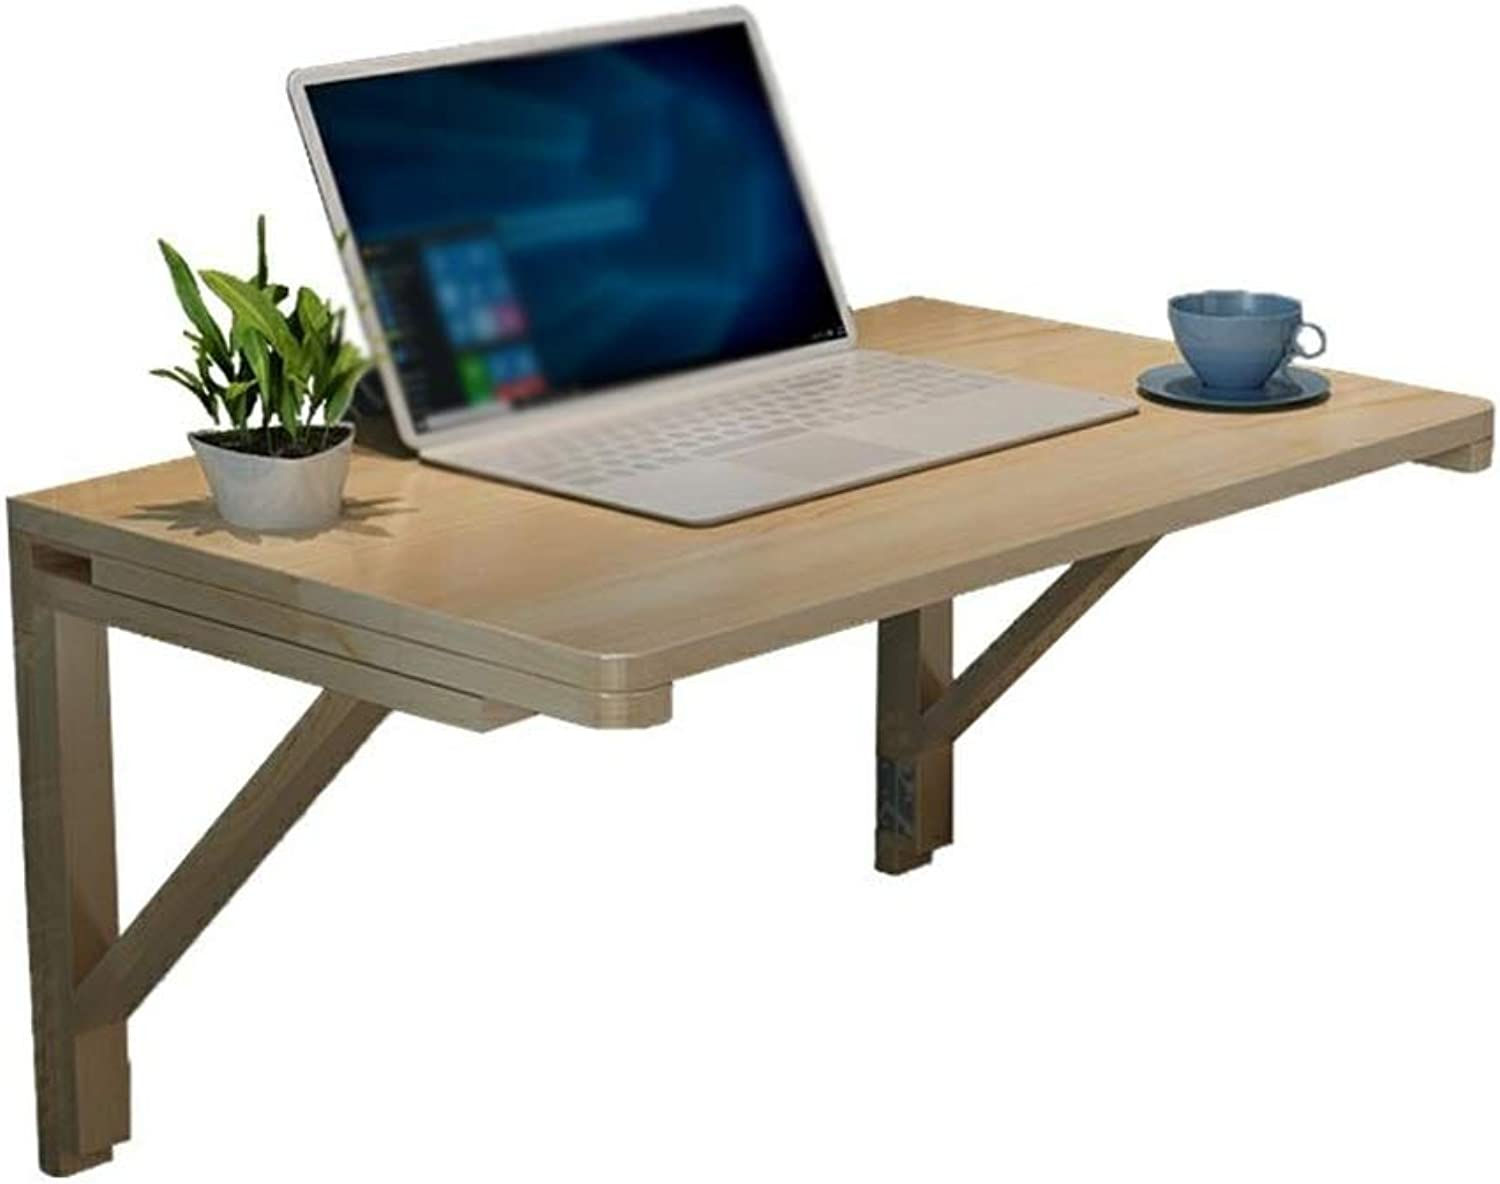 ZZ Folding Table Solid Wood Hanging Folding Computer Table Wall-Mounted Small Desk, Suitable for Kitchen Bedroom (Size 31.5 × 19.7in)